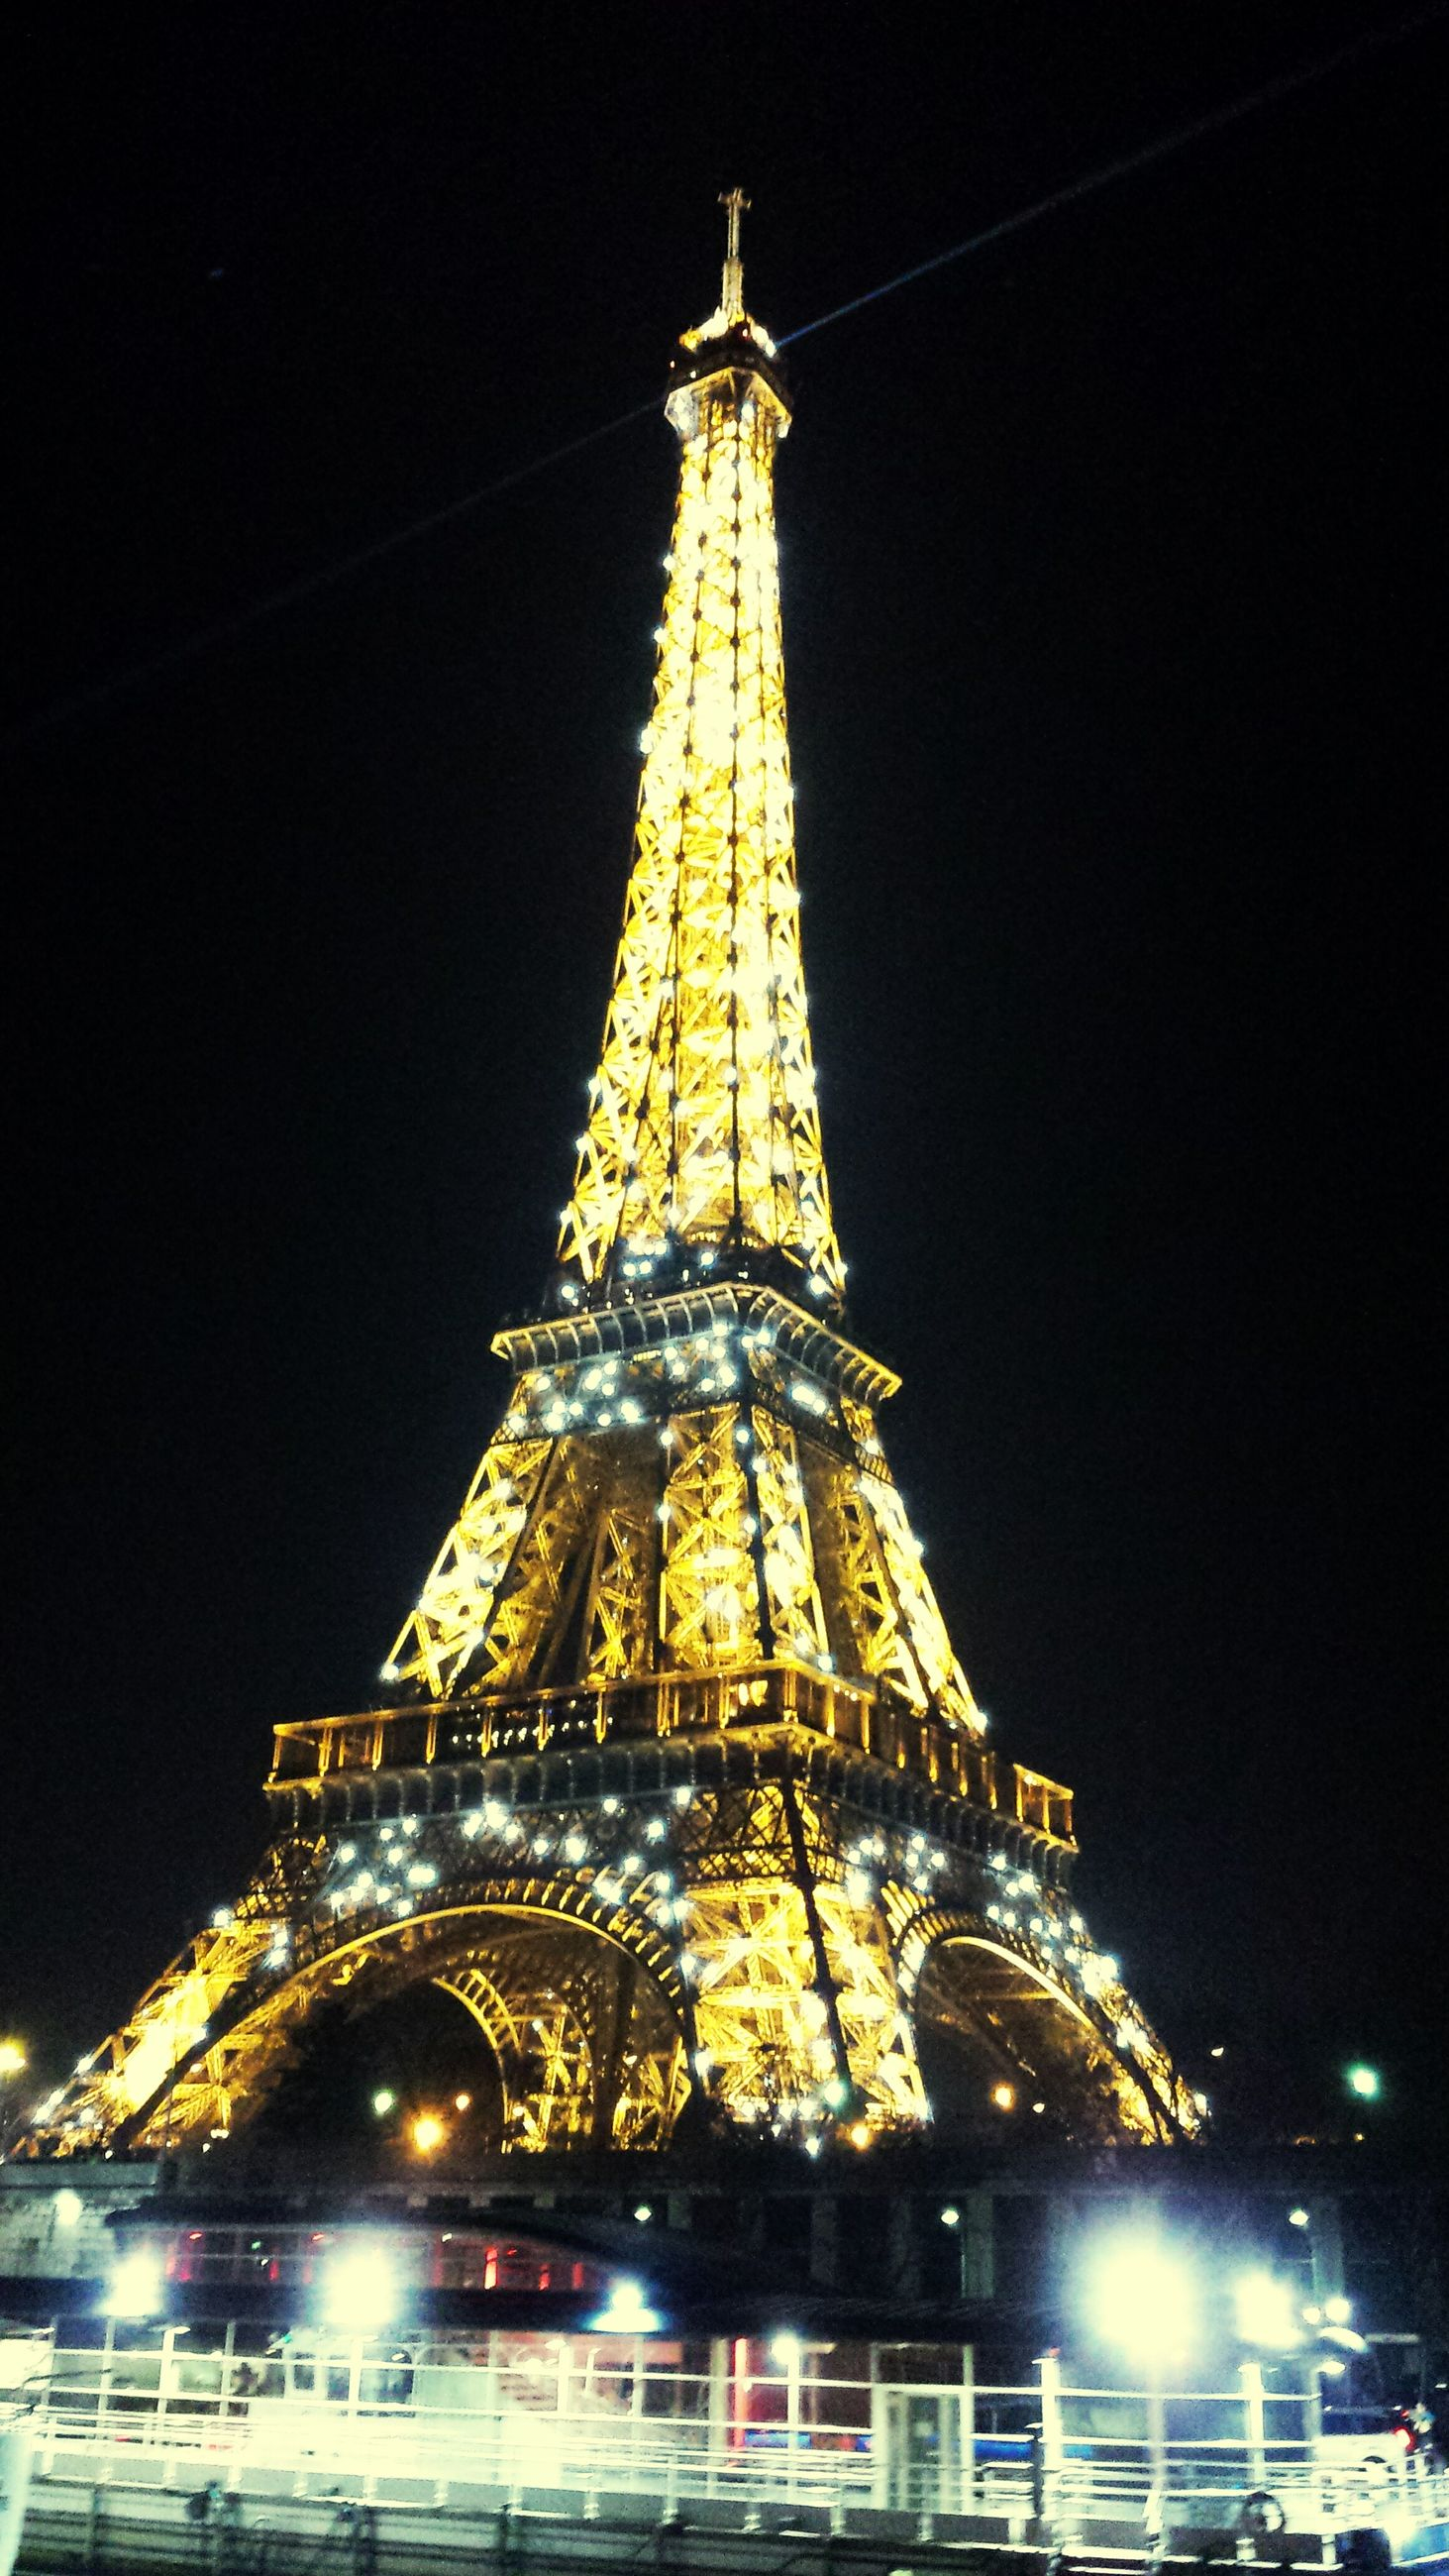 illuminated, famous place, night, travel destinations, international landmark, architecture, built structure, tourism, travel, eiffel tower, capital cities, low angle view, building exterior, tower, tall - high, city, culture, sky, history, architectural feature